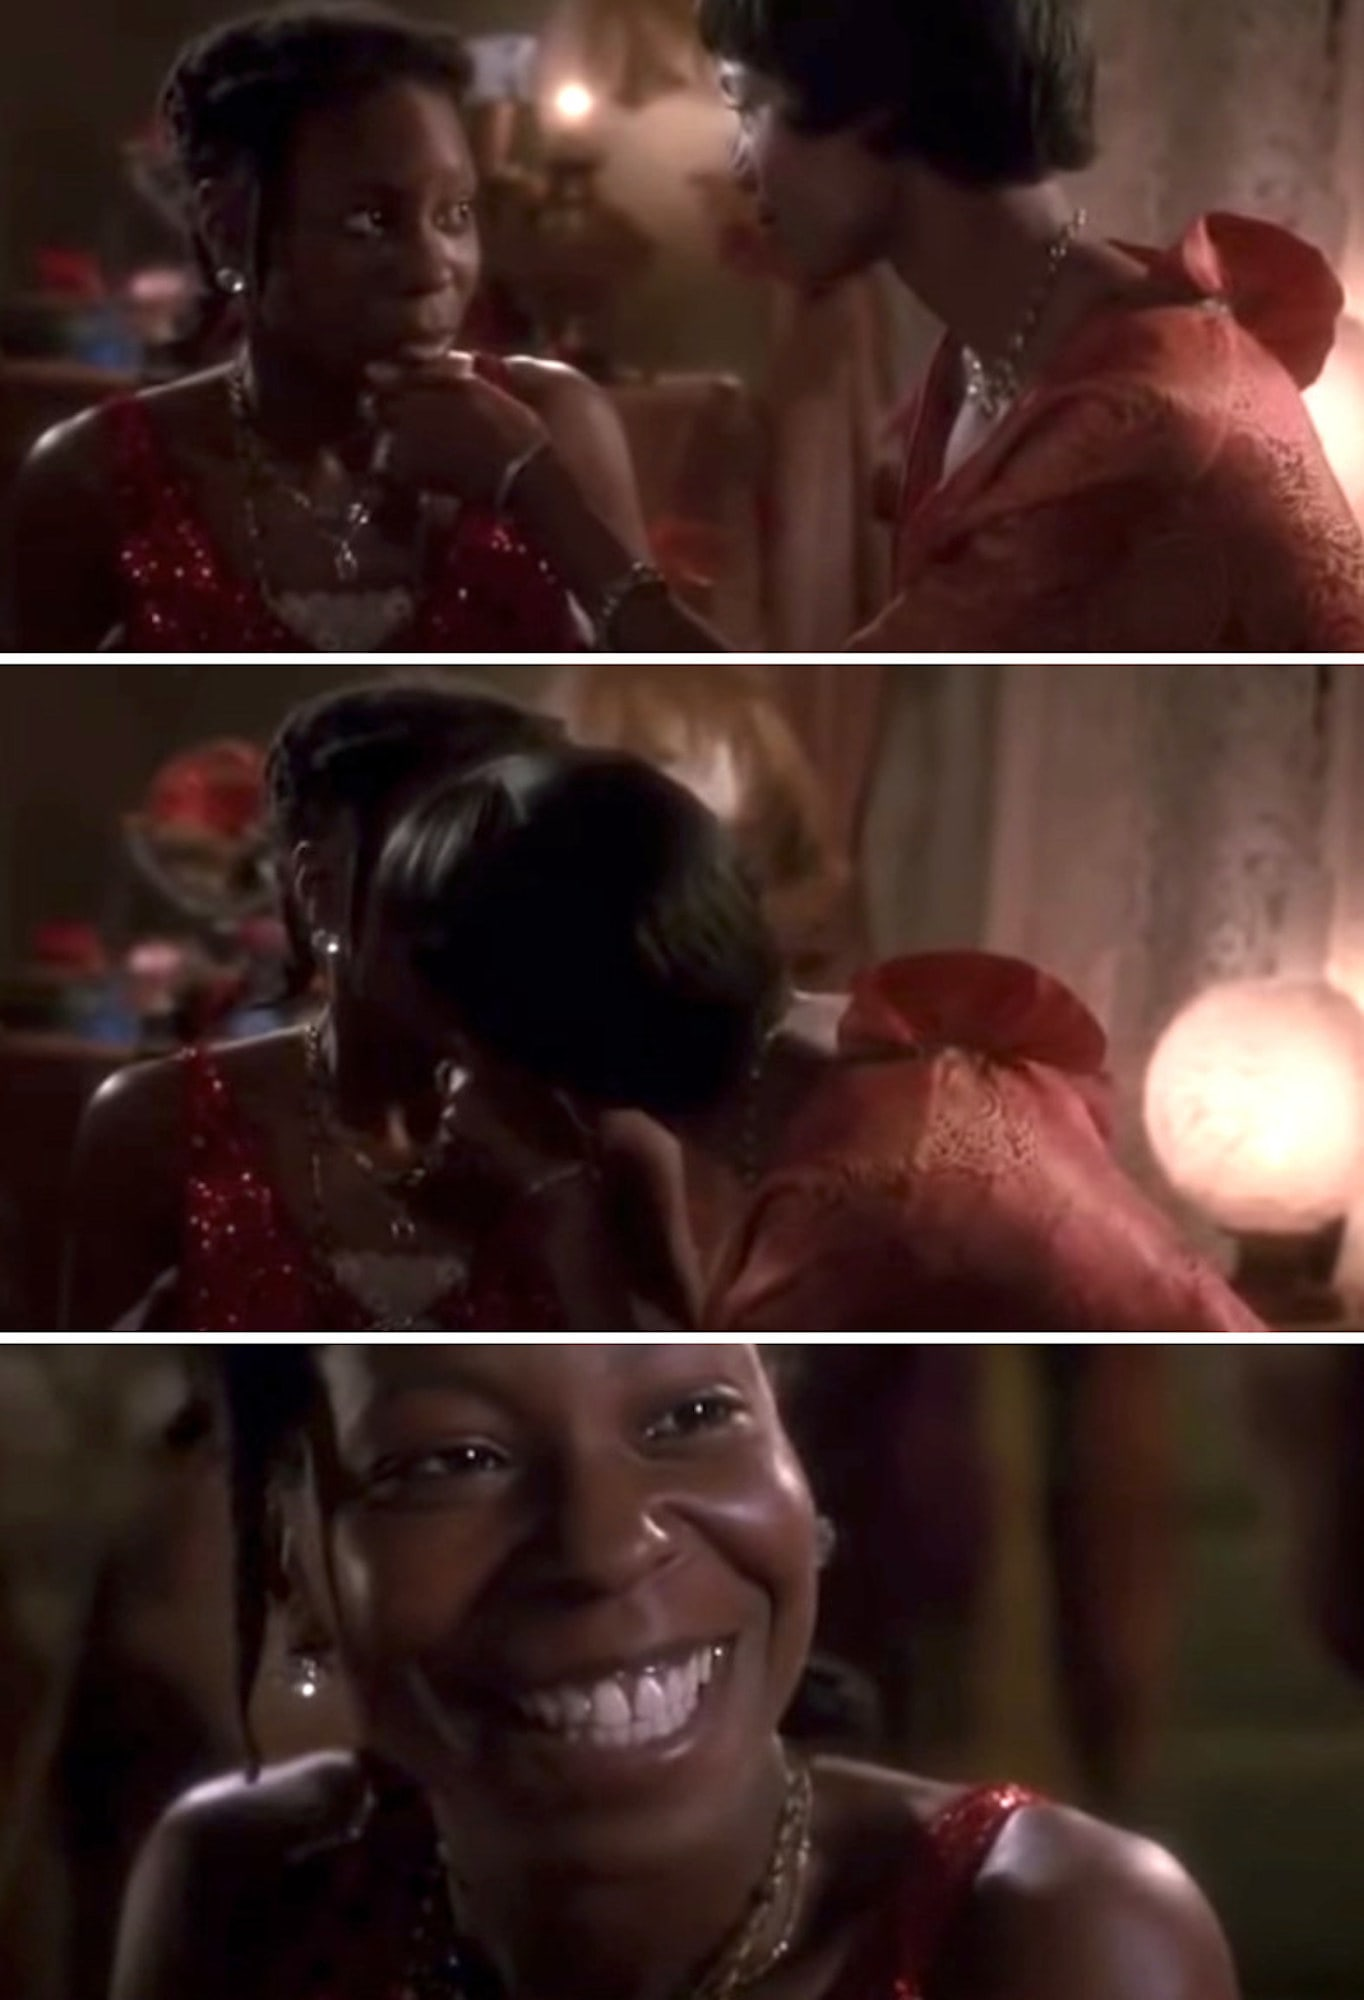 Shug kissing Celie for the first time, and Celie smiling happily in response